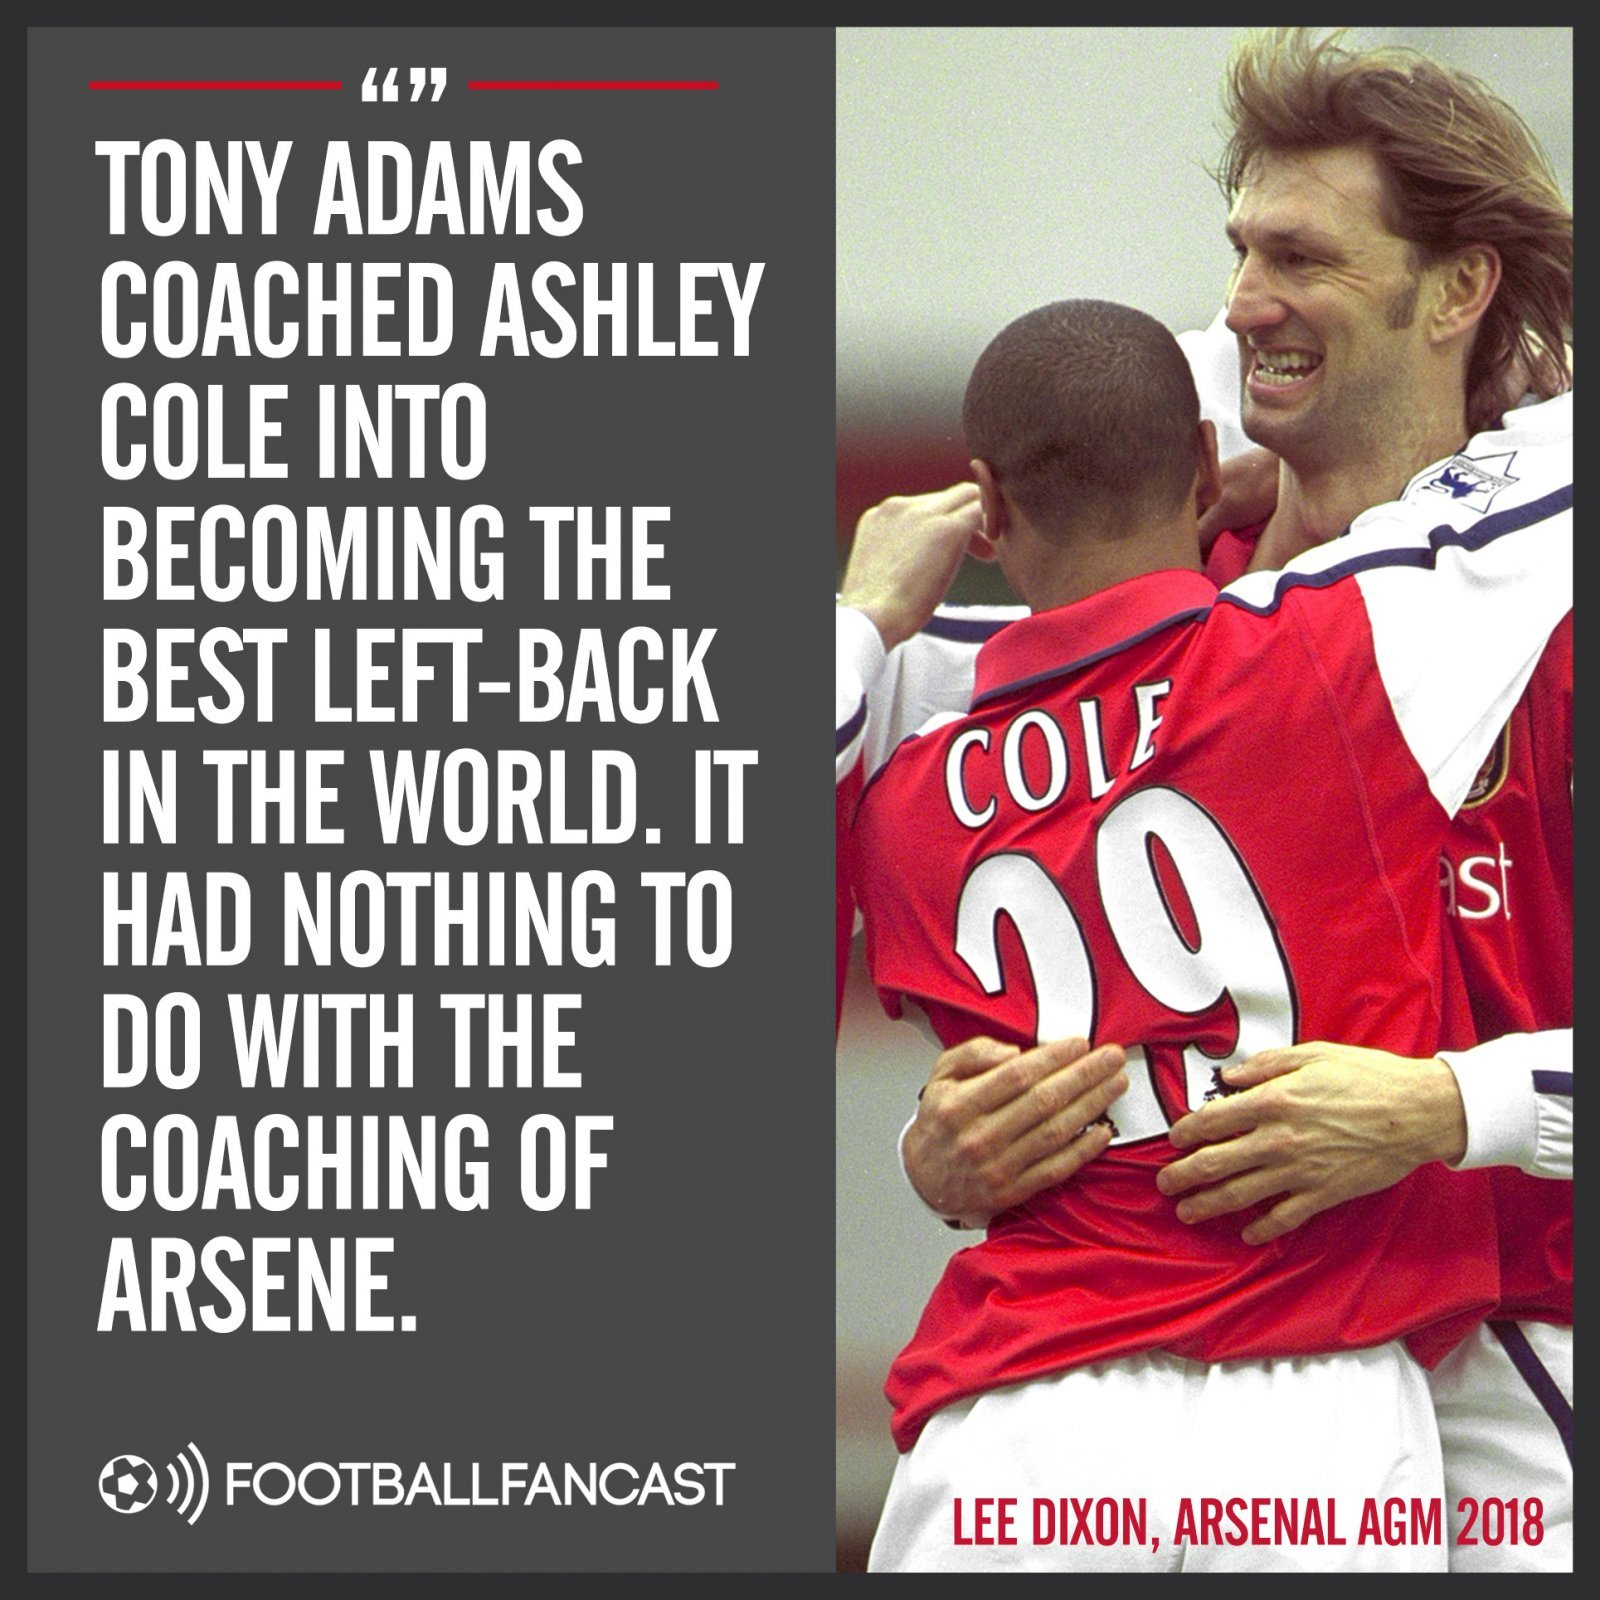 Lee Dixon credits Tony Adams in making Ashley Cole a world-class left-back